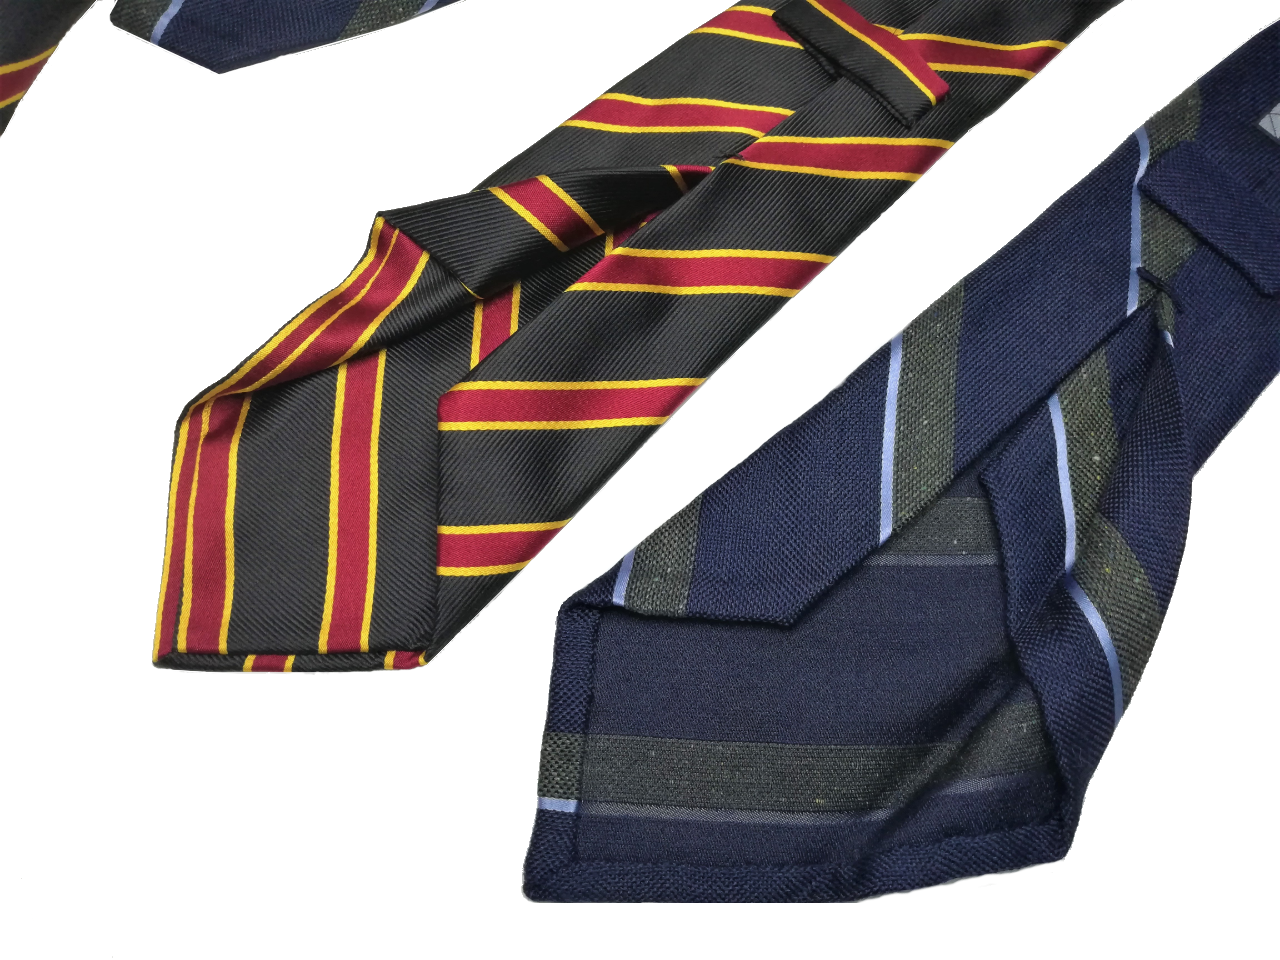 Untipped Ties